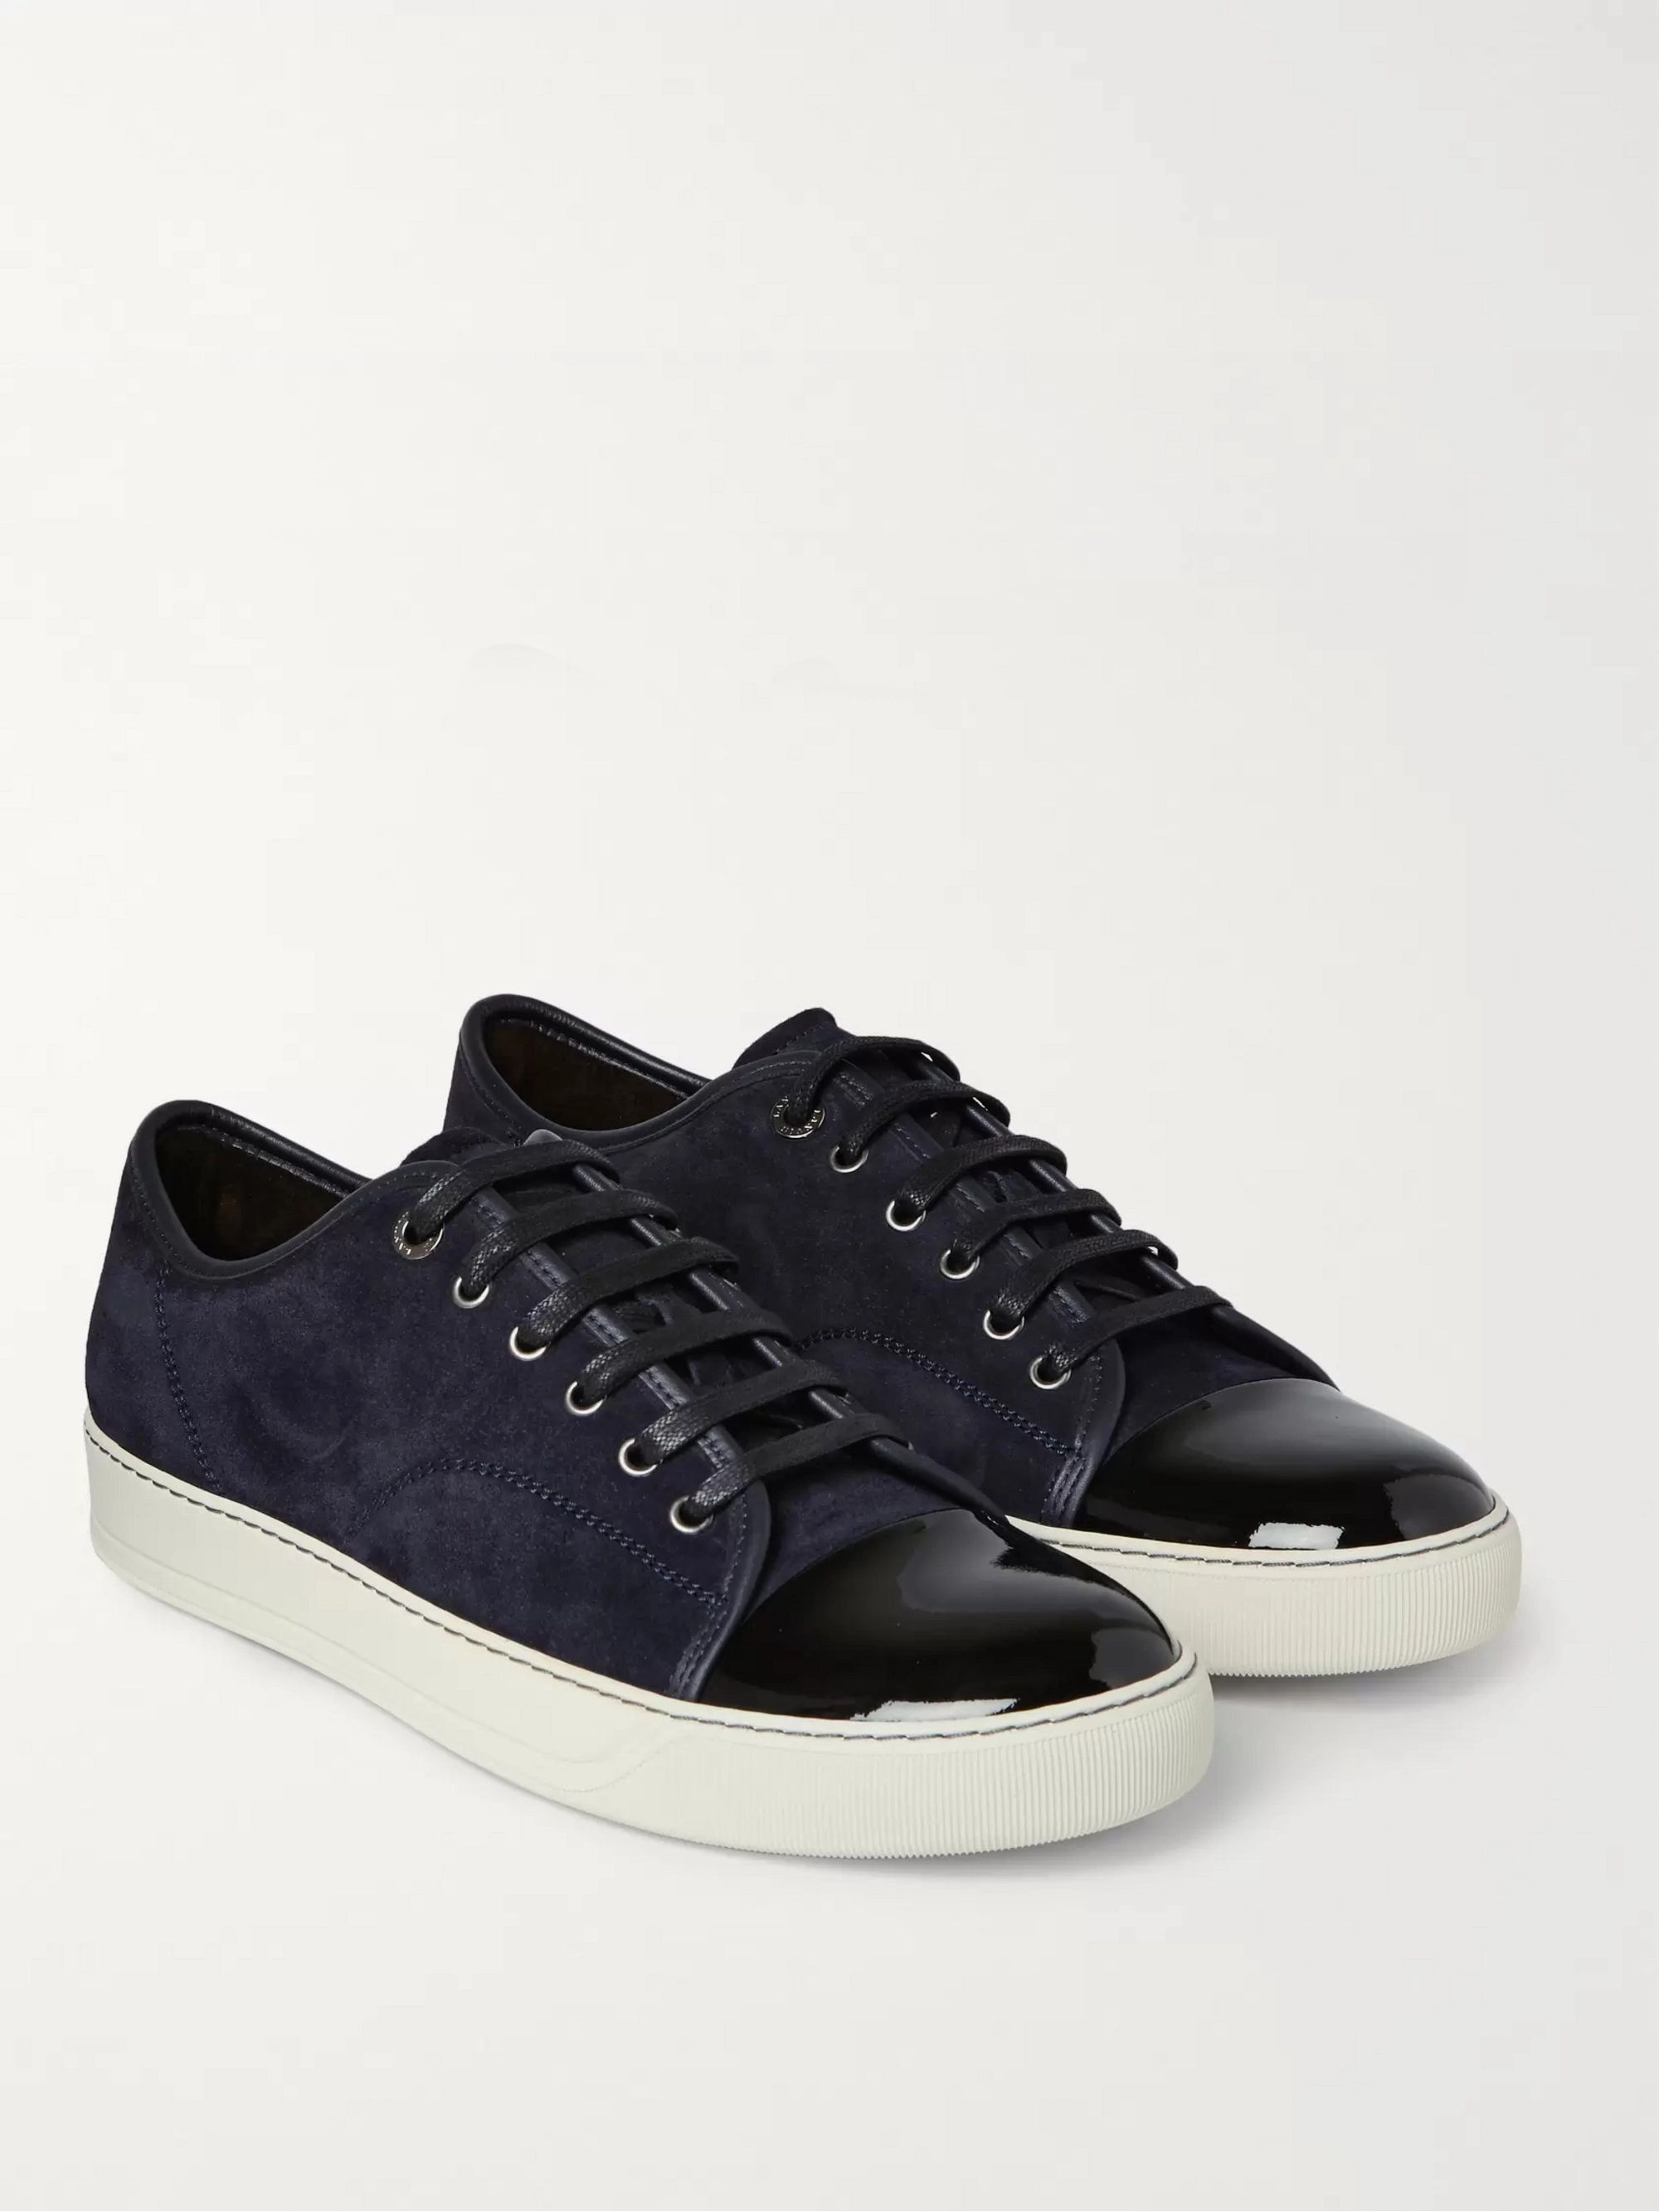 Lanvin High Top Sneakers for Men